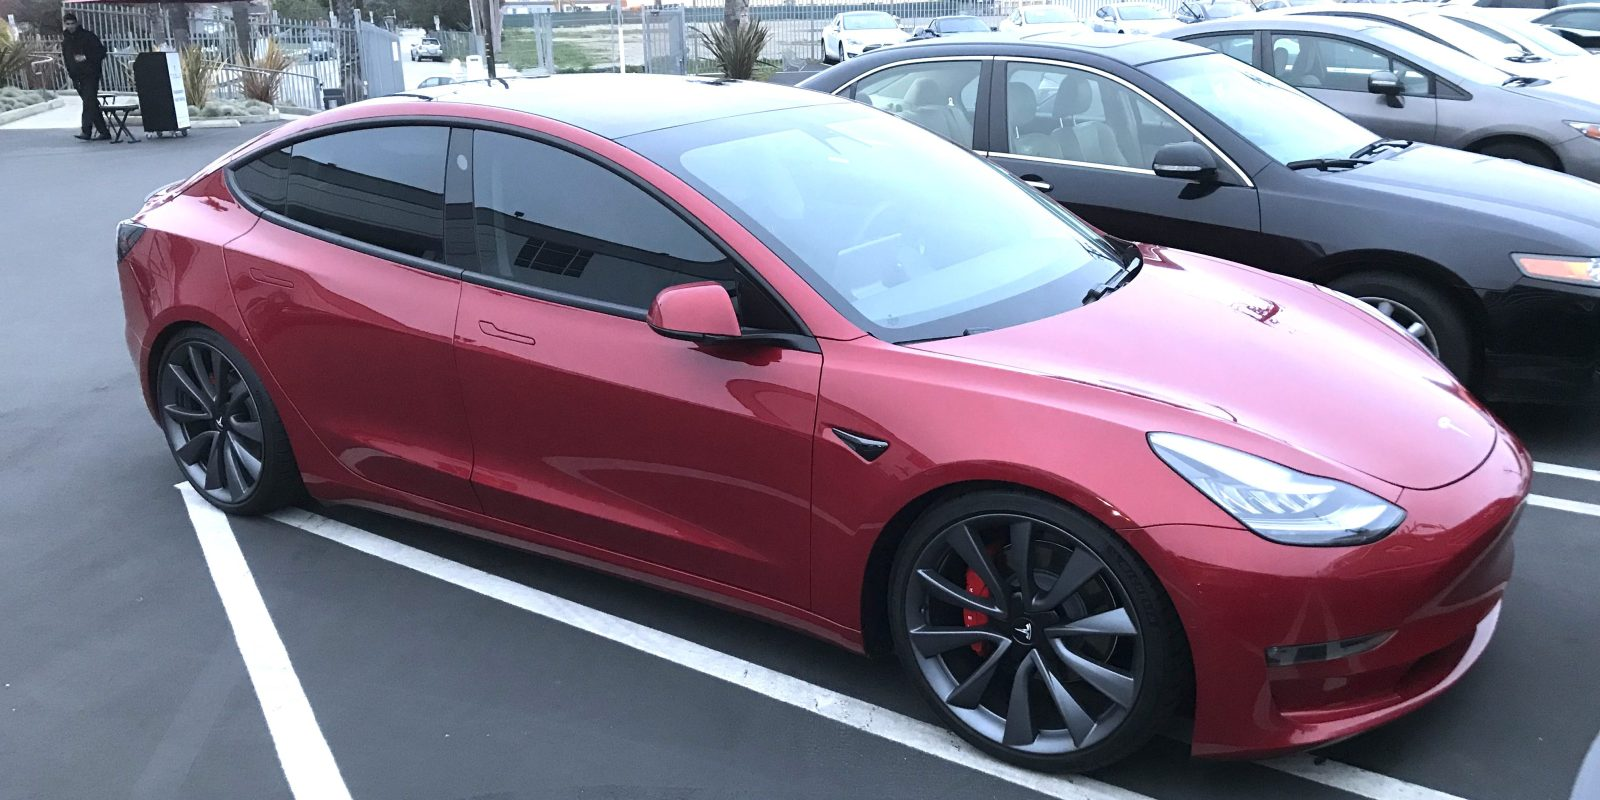 Tesla claims that Model 3 panel gaps have improved by